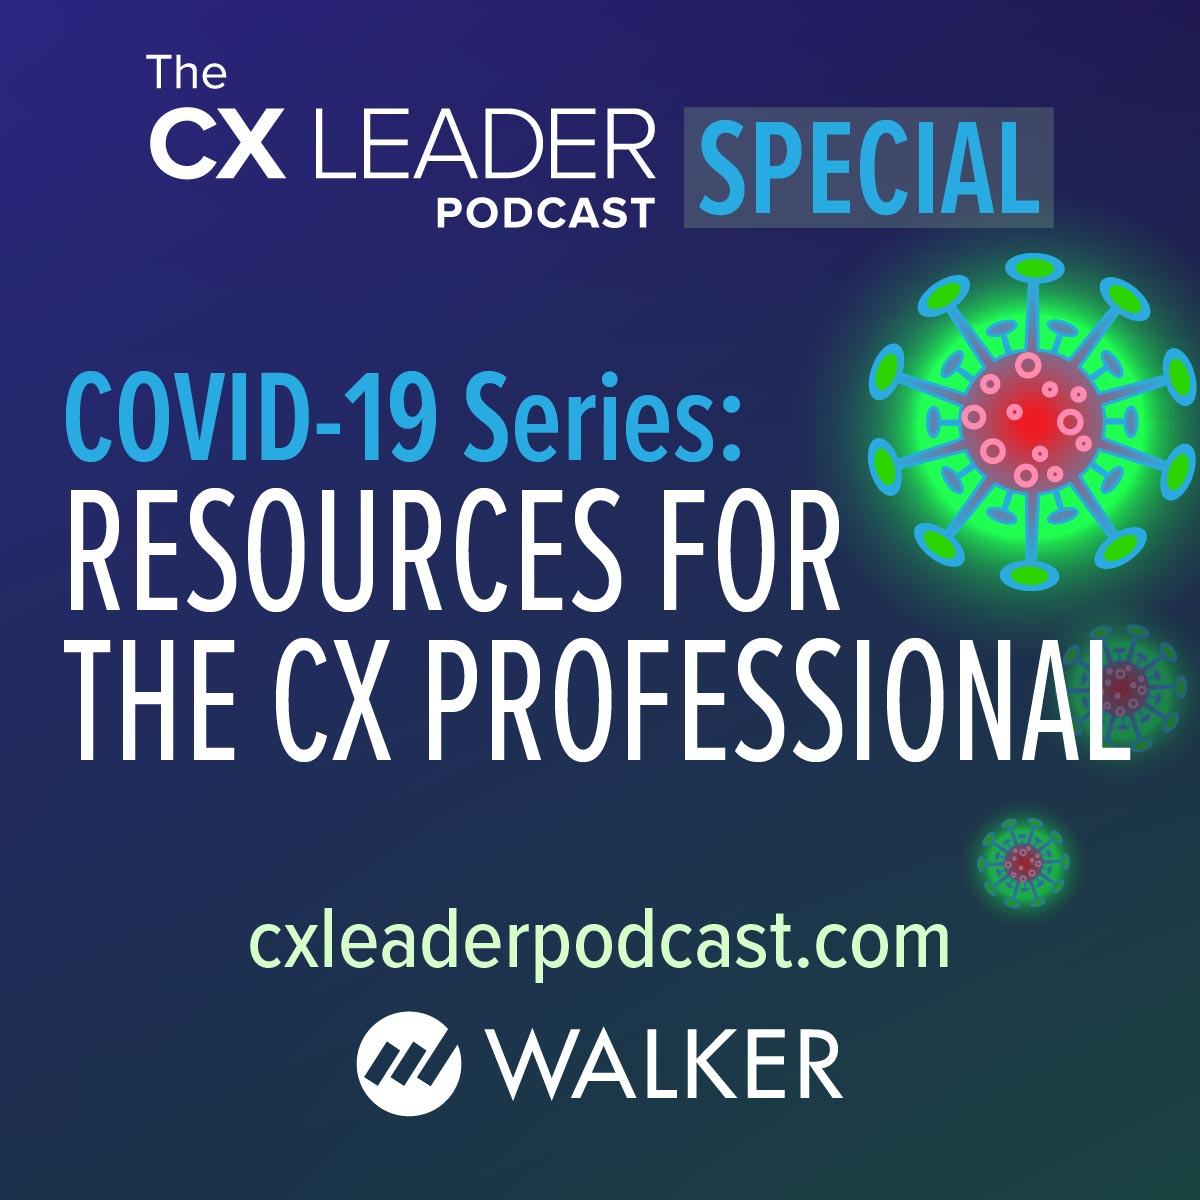 COVID-19 Series: Resources for CX Professionals